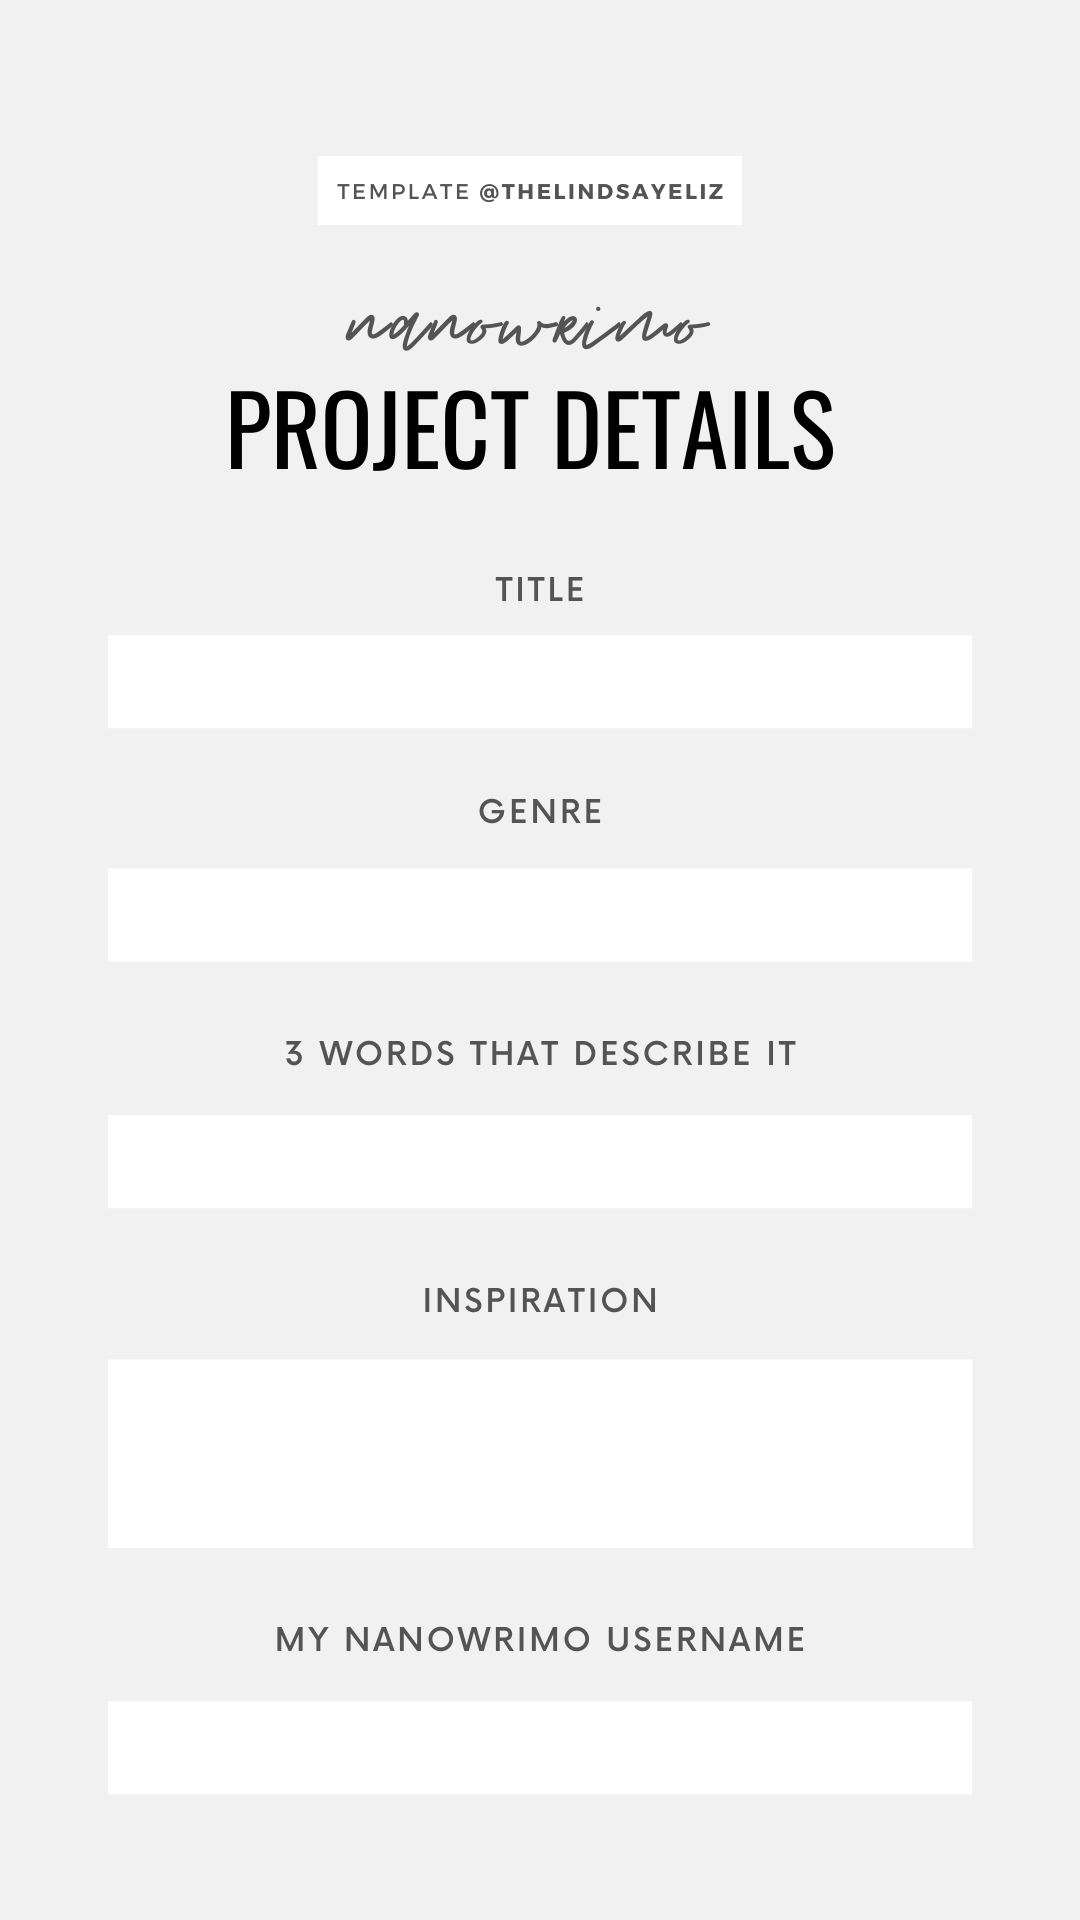 Fill out this NaNoWriMo IG Story Template for writers to share your project details with your followers.